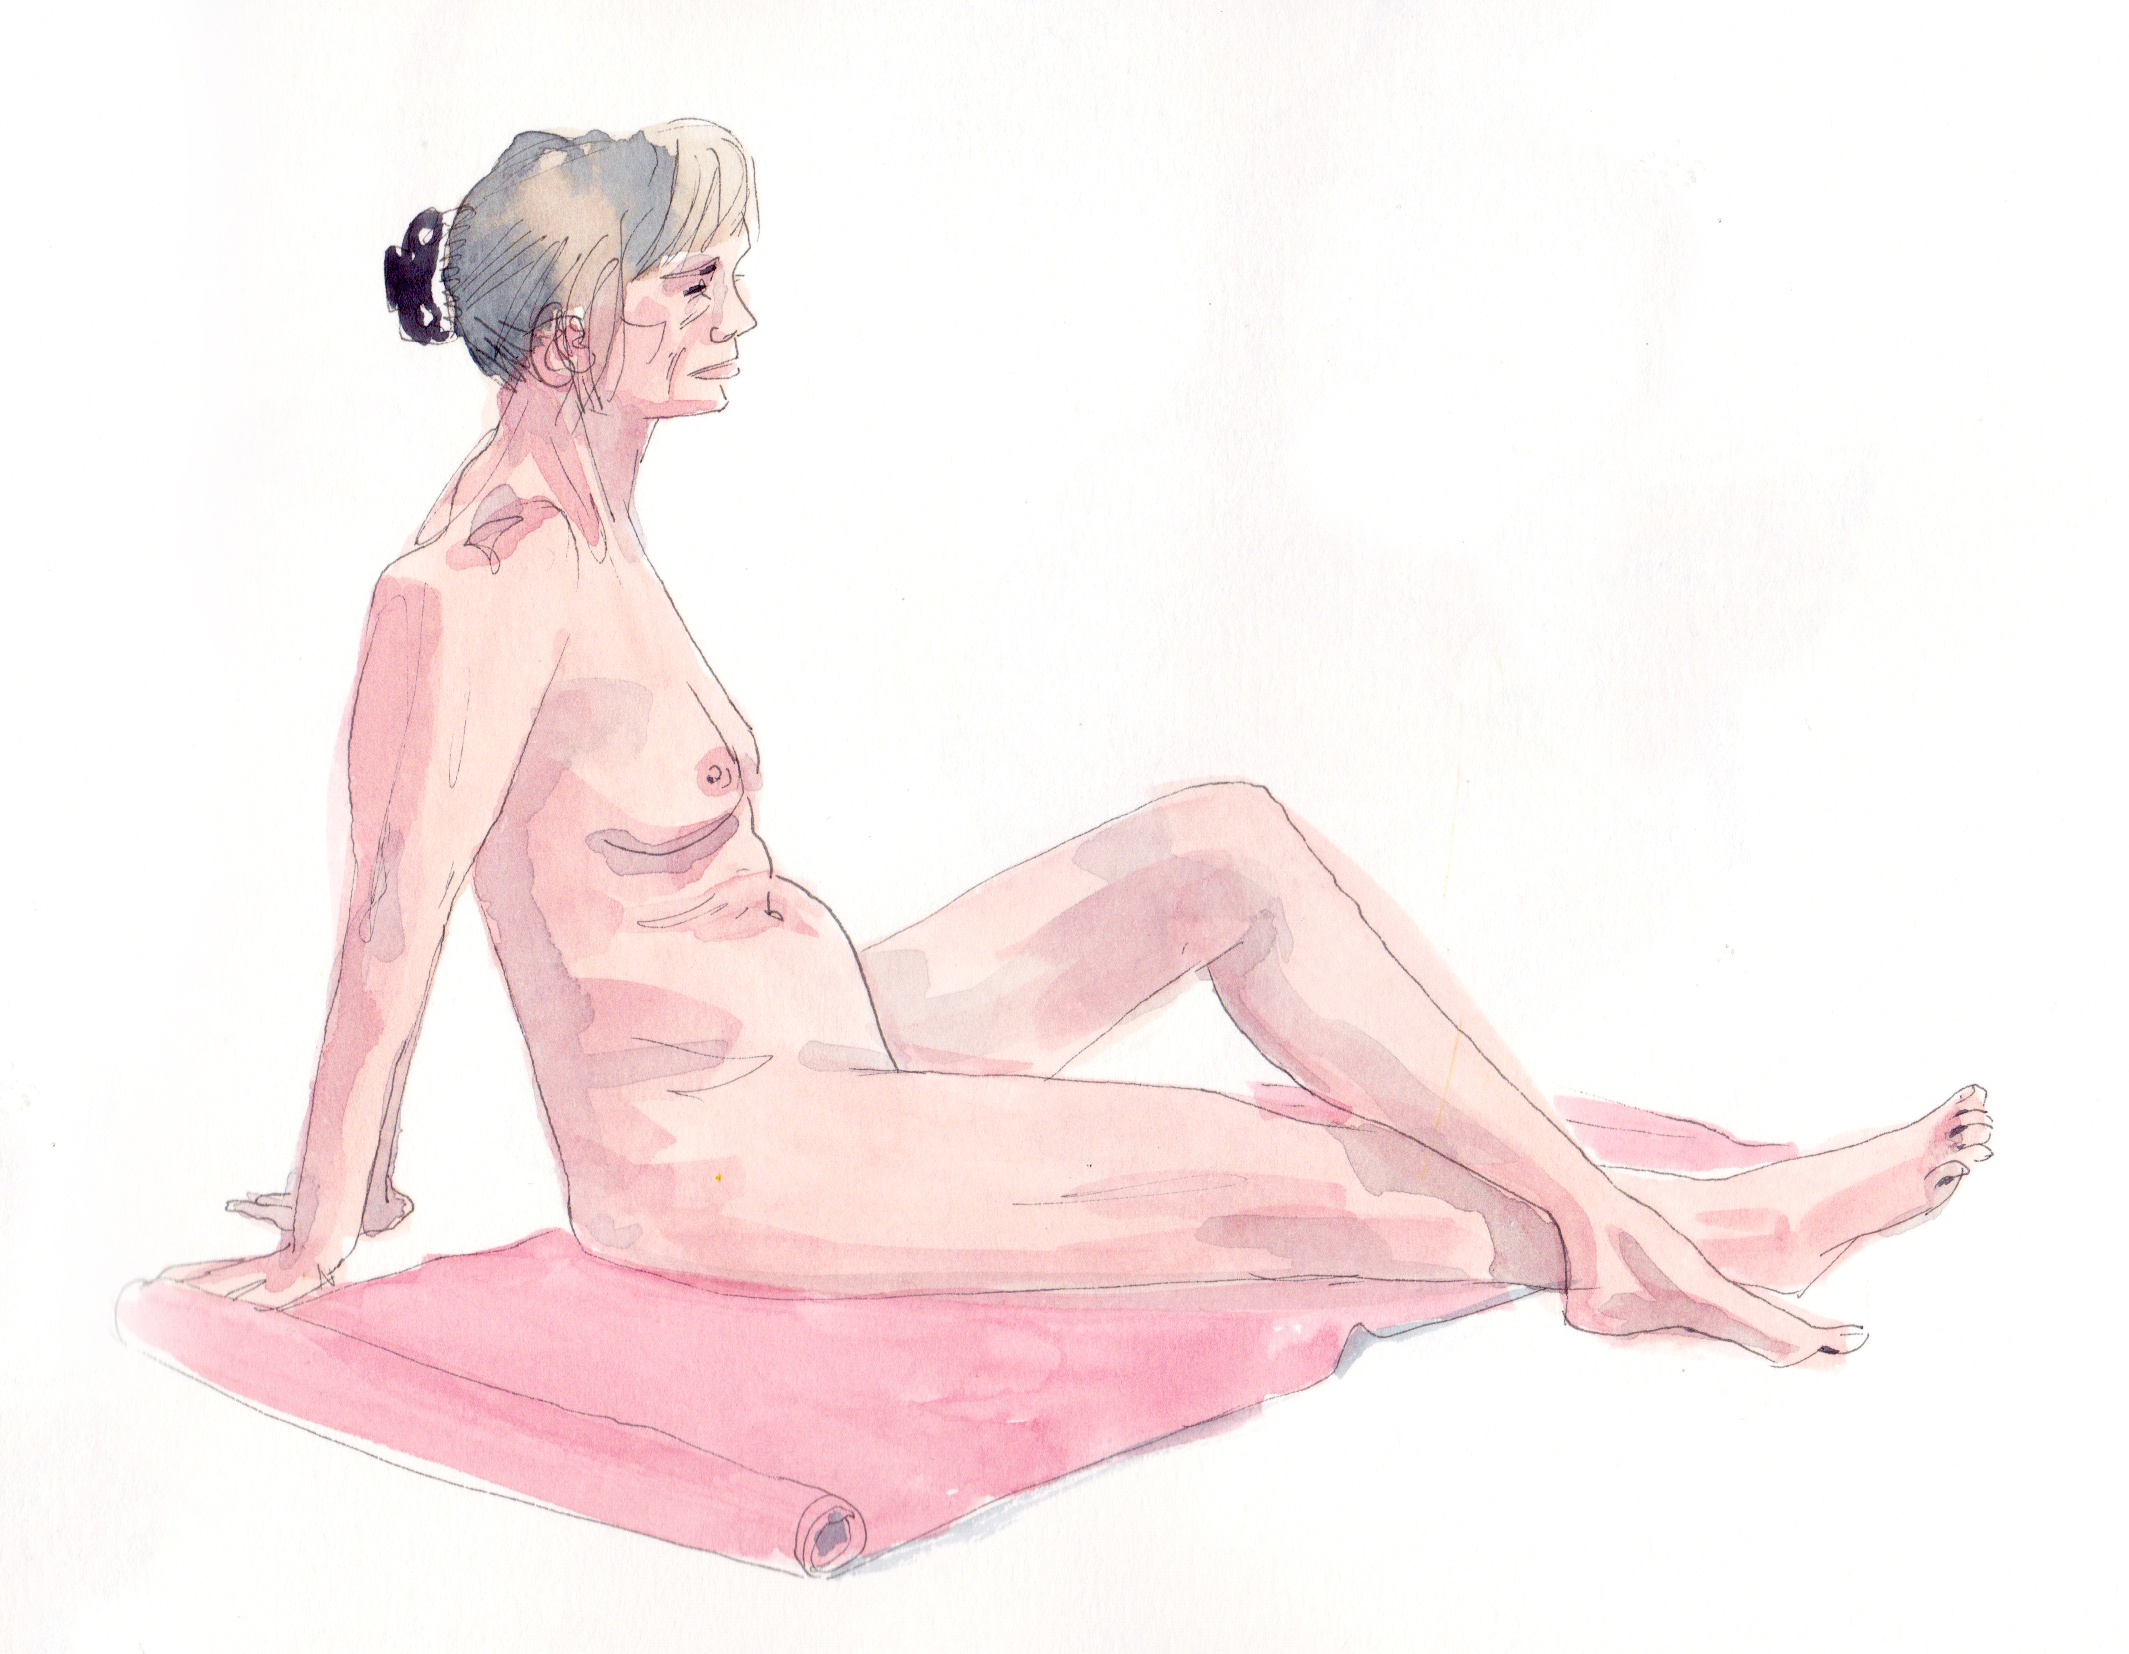 lifedrawing 13